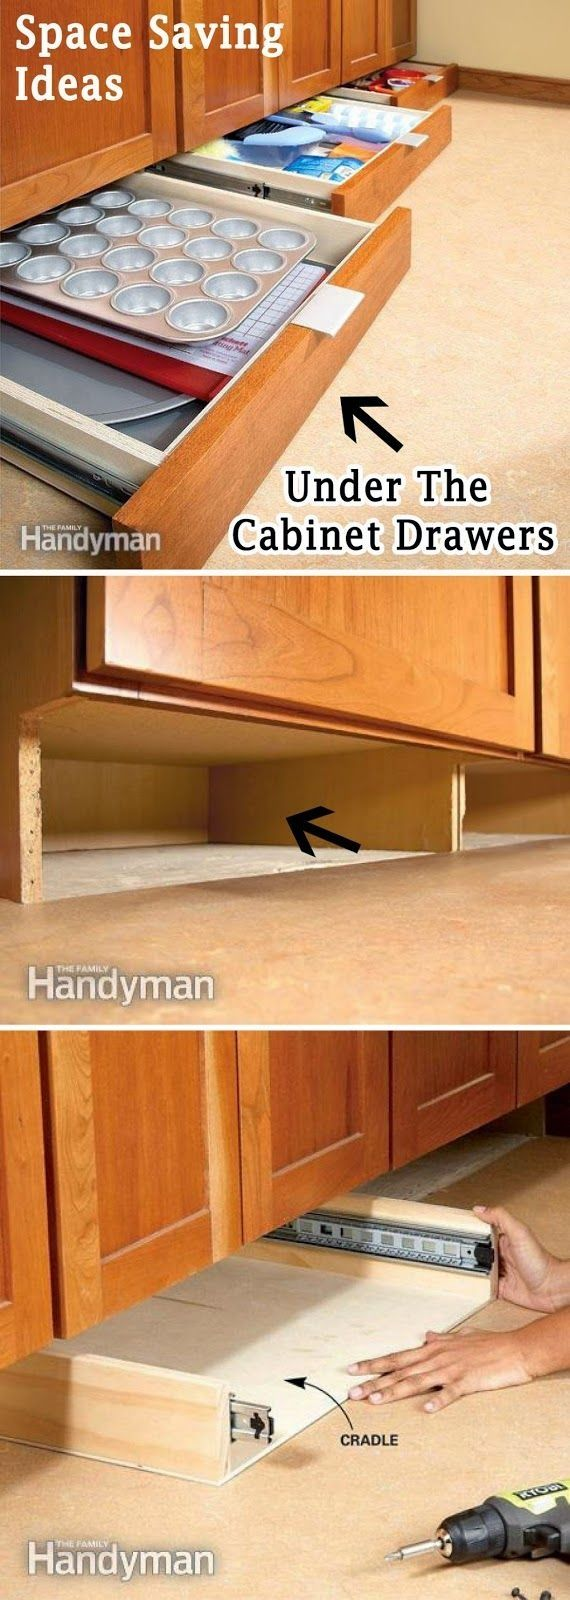 1000 ideas about cabinet space on pinterest cabinets - Space saving cabinet ideas ...